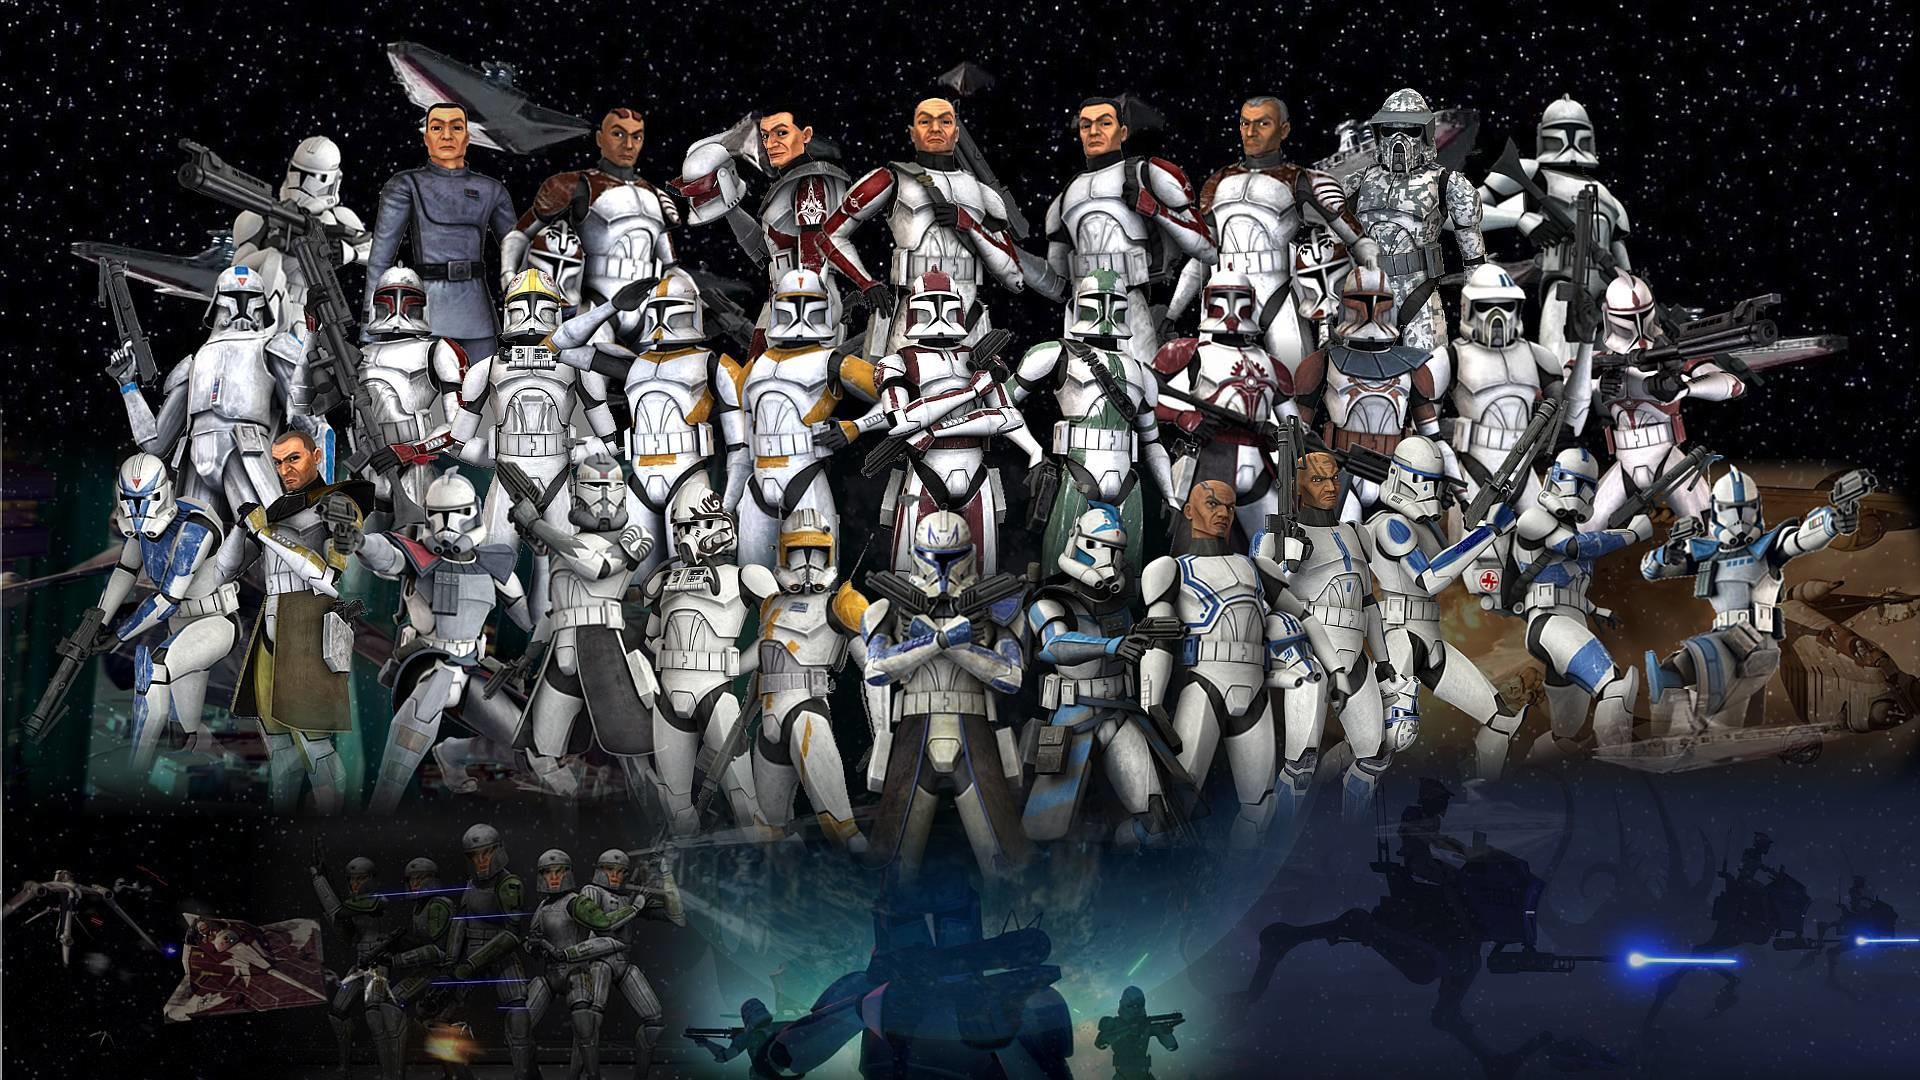 clone trooper wallpaper ✓ kamos wallpaper